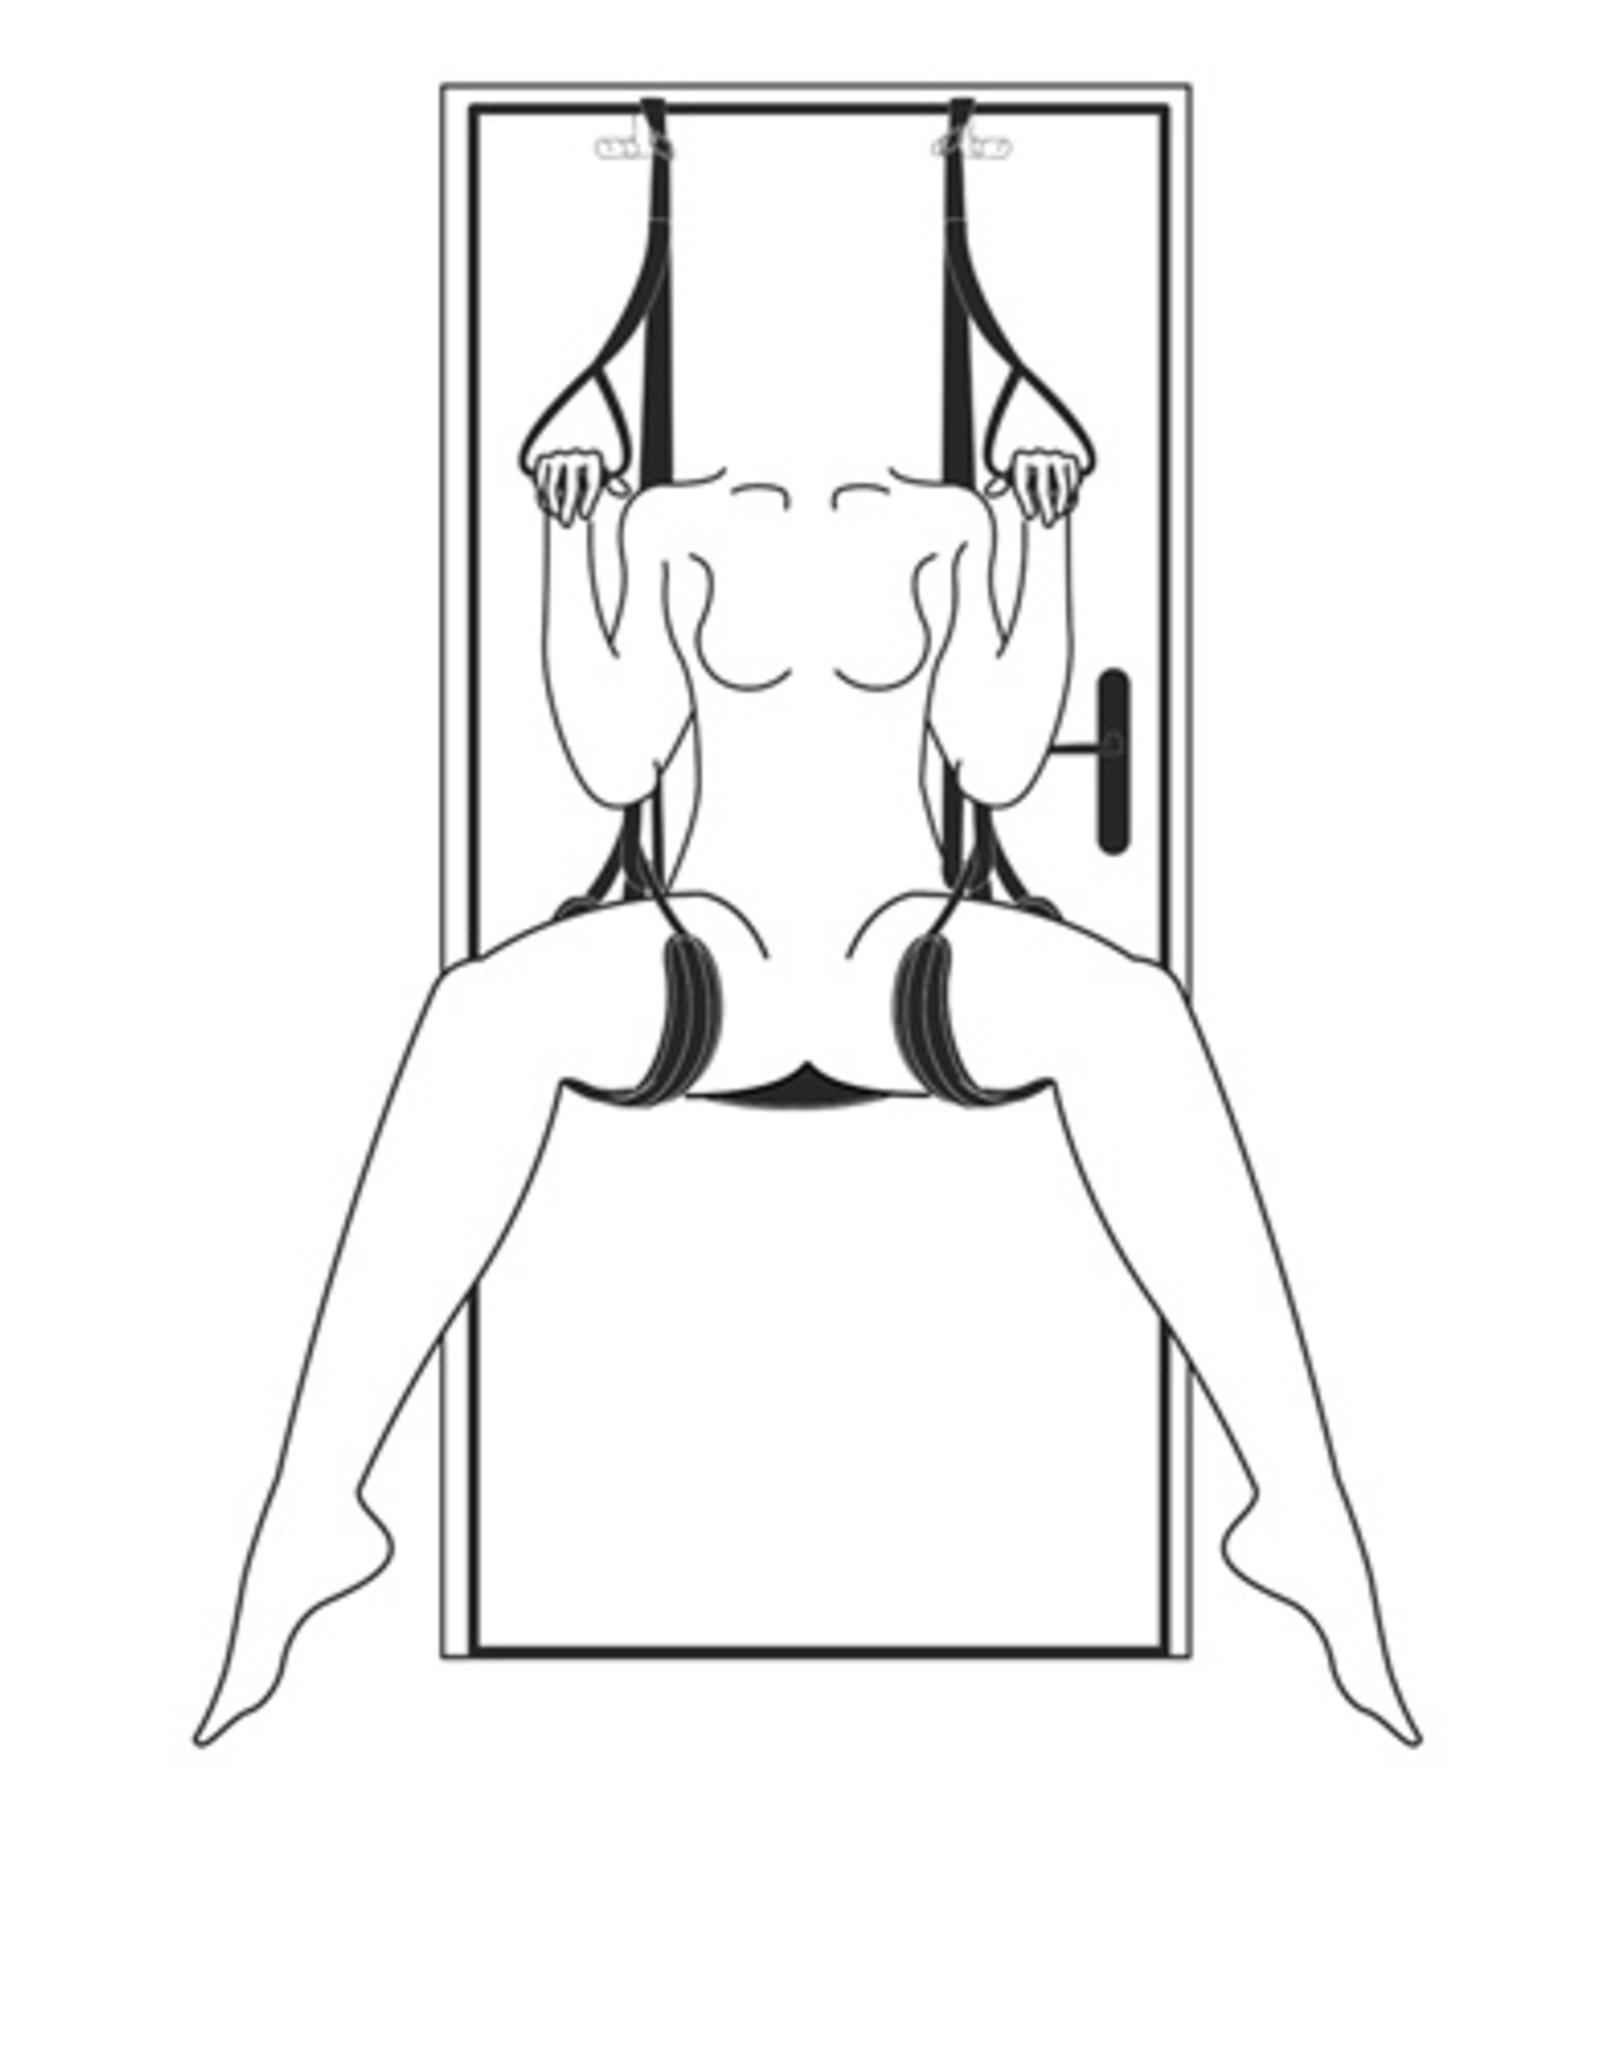 Easytoys Fetish Collection Leg & Bum Support Over The Door Swing